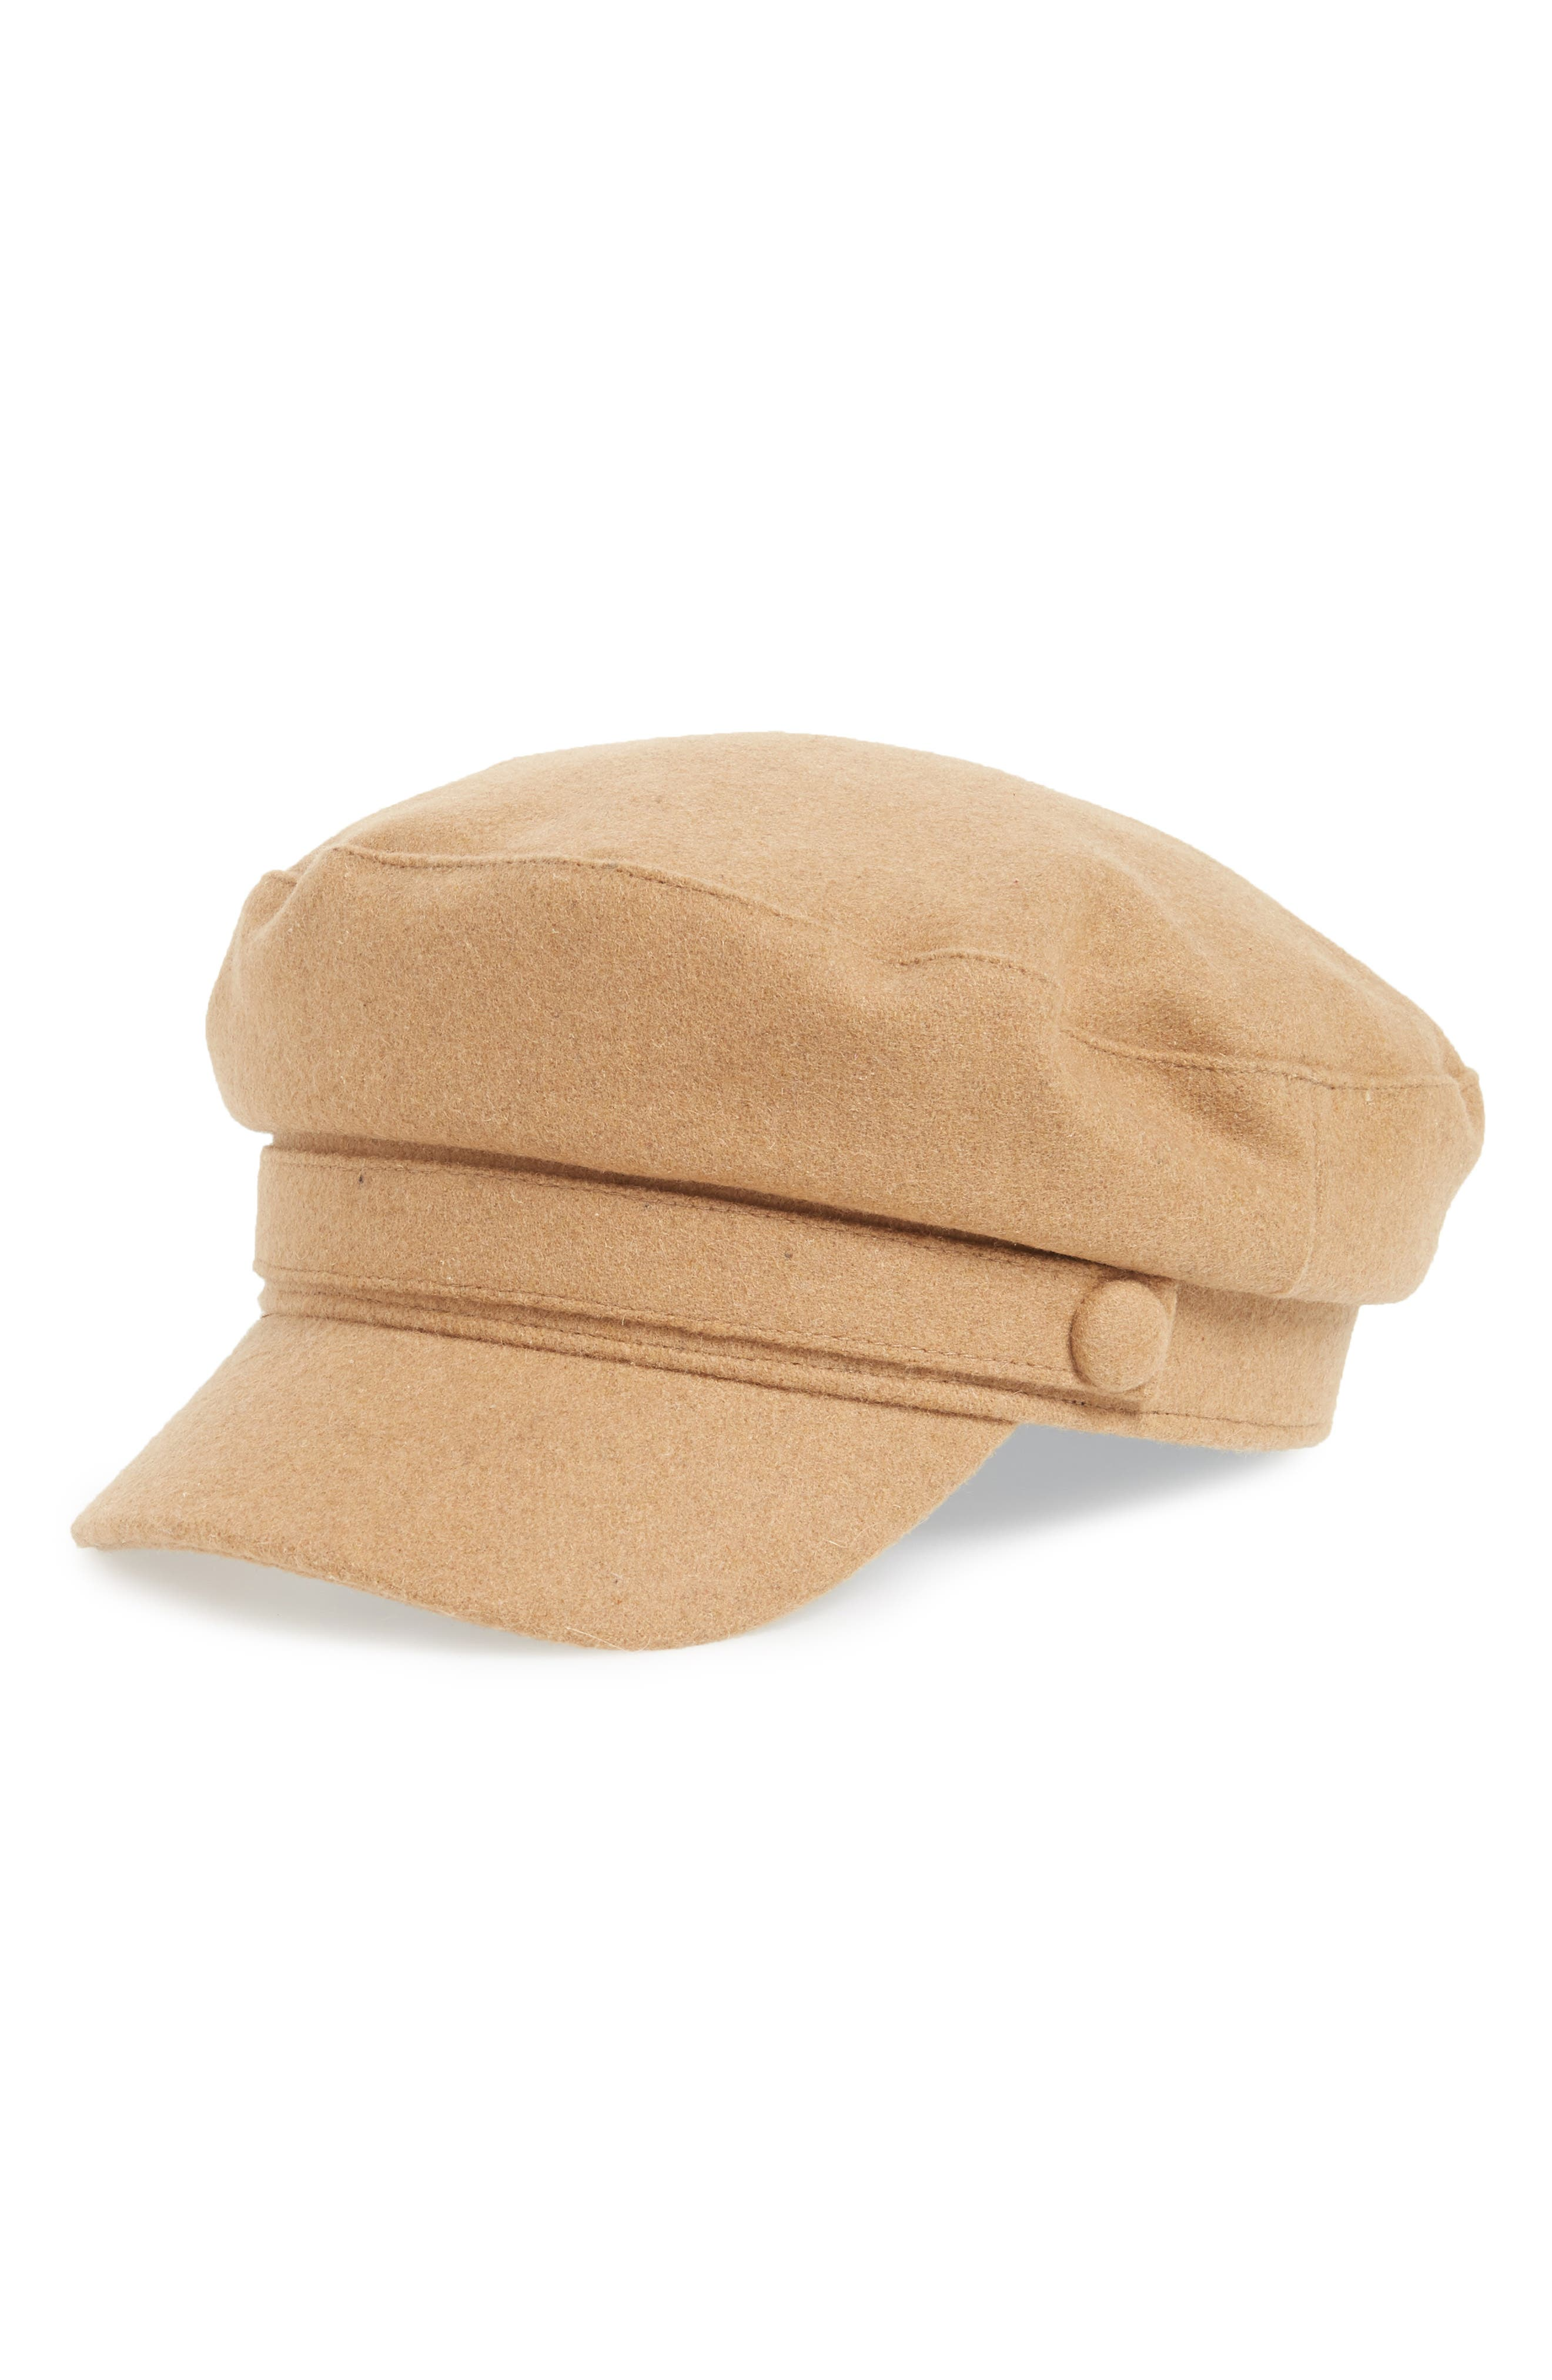 Cabbie Baker Boy Cap,                             Main thumbnail 1, color,                             TAN CAMEL HEATHER